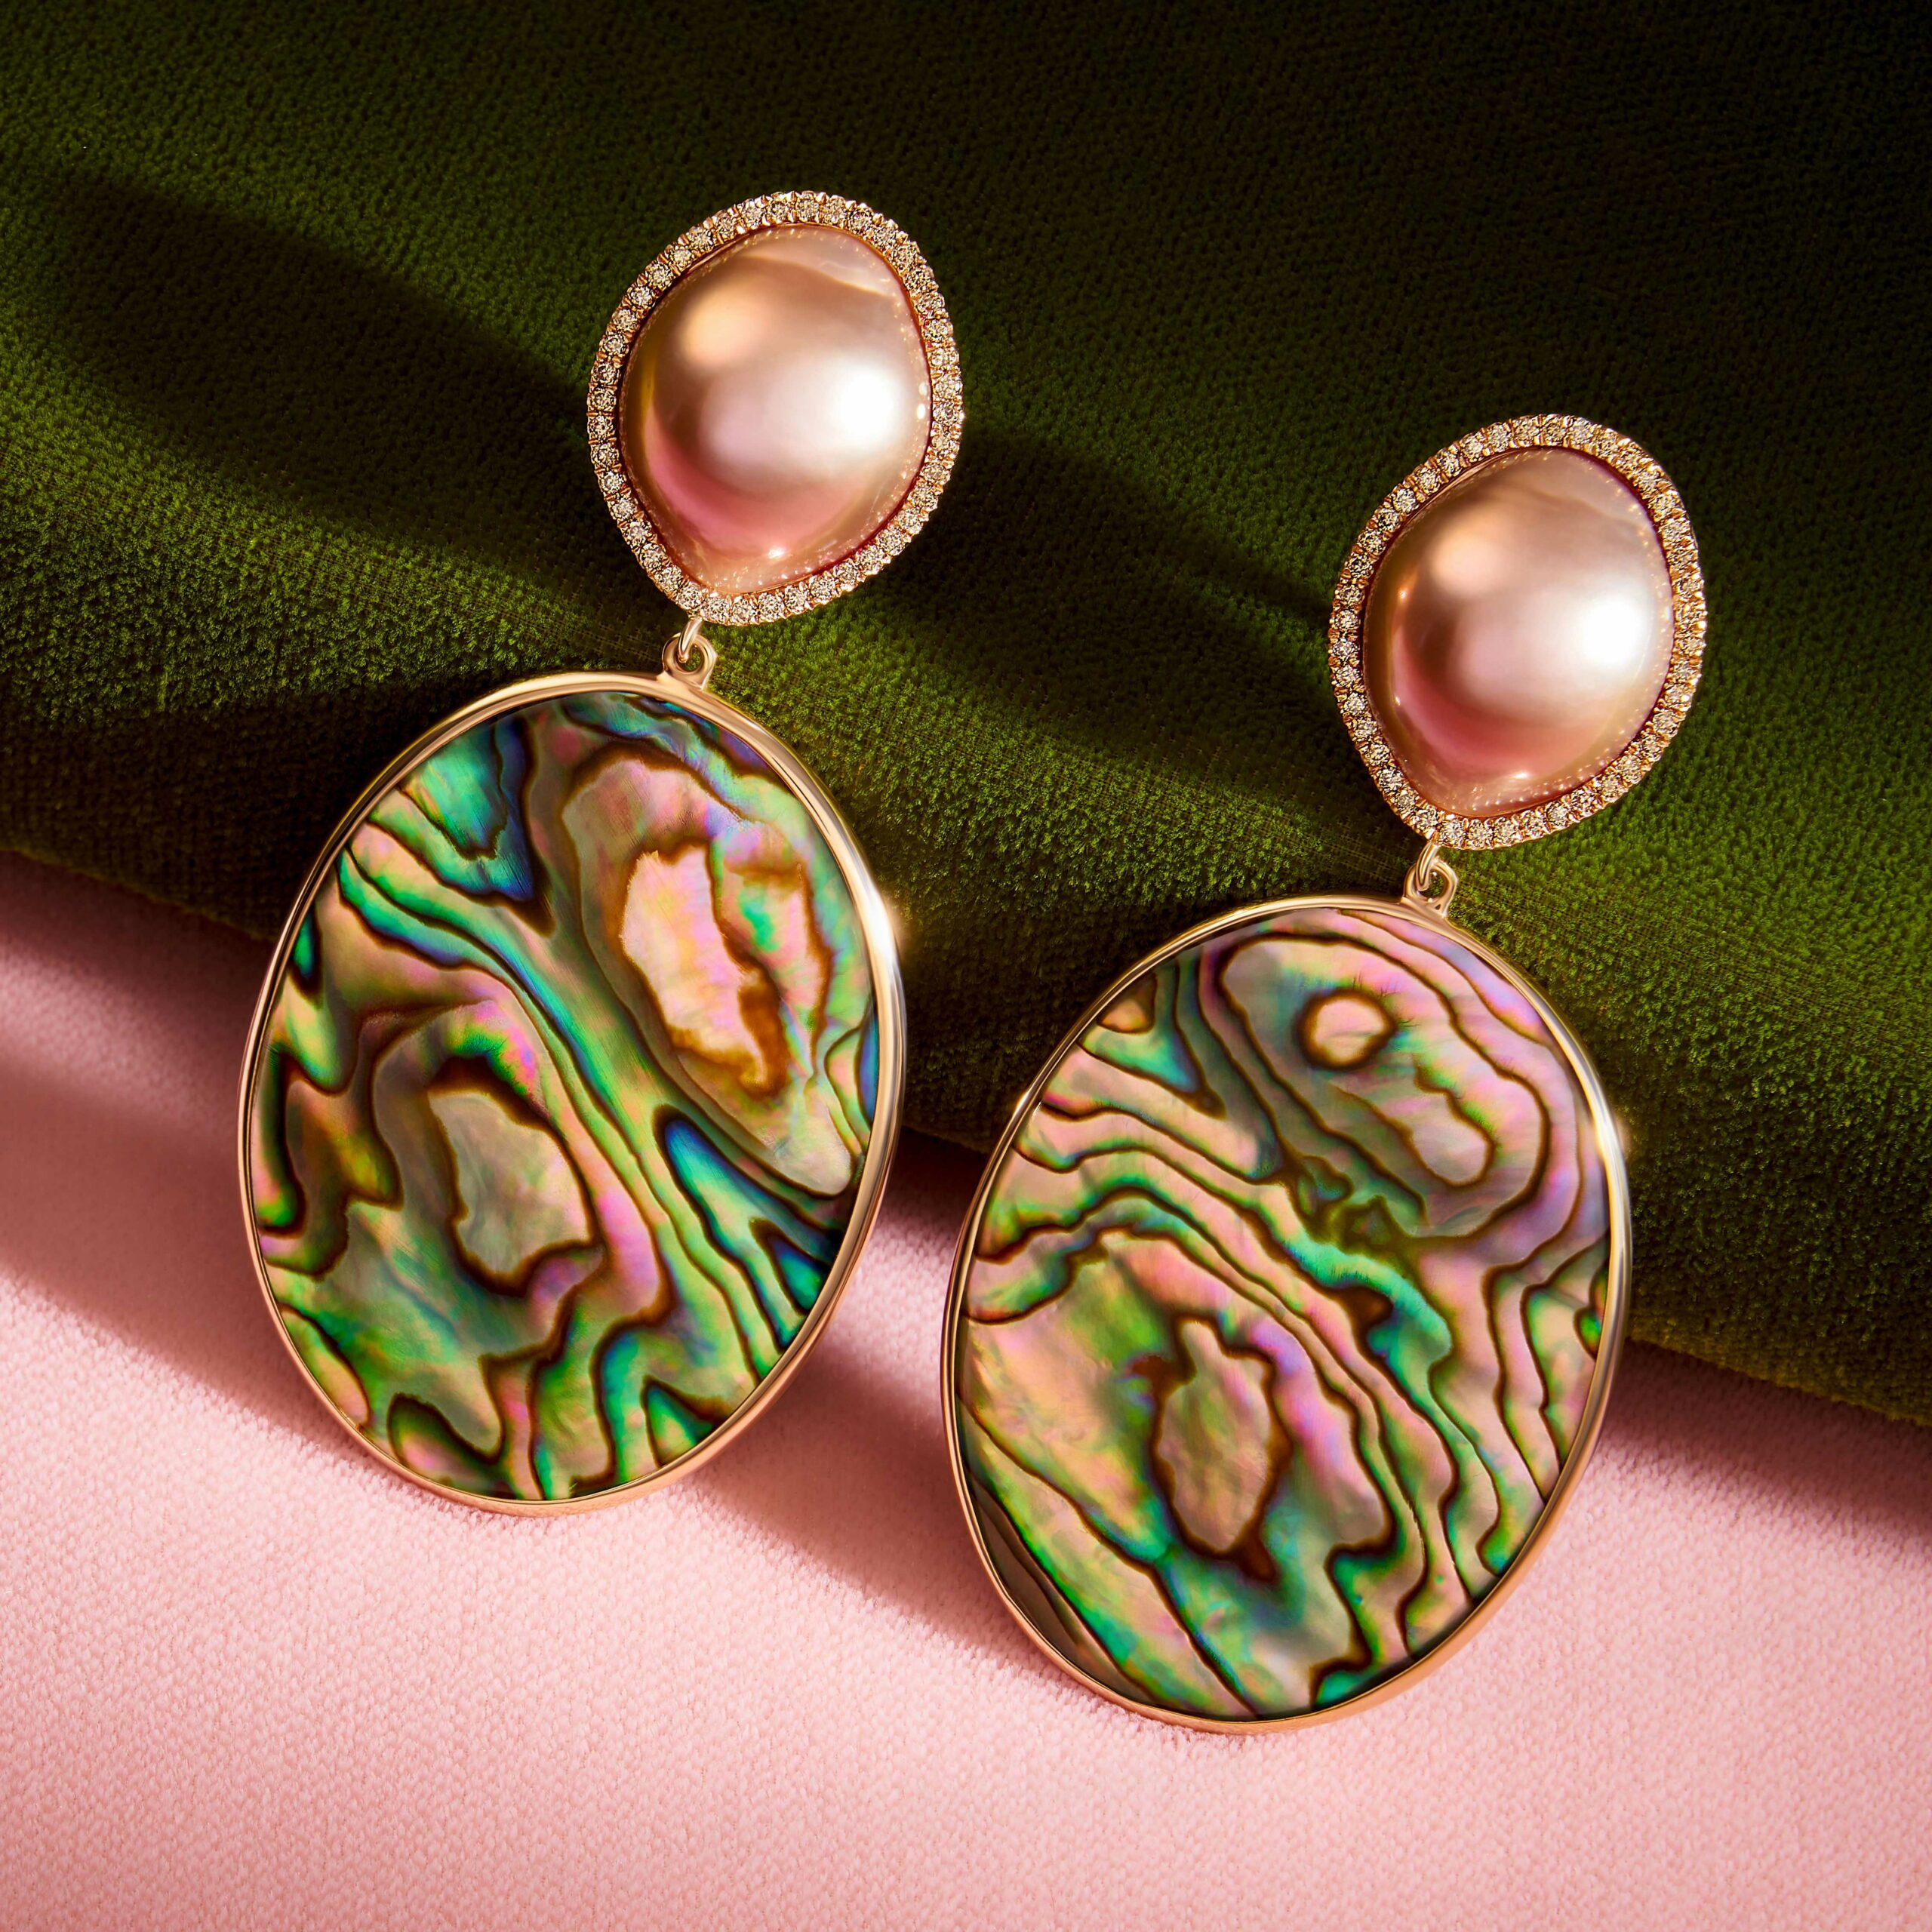 mish_products_earrings_Makena-PnkAbalone-ER-Editorial-1__resize